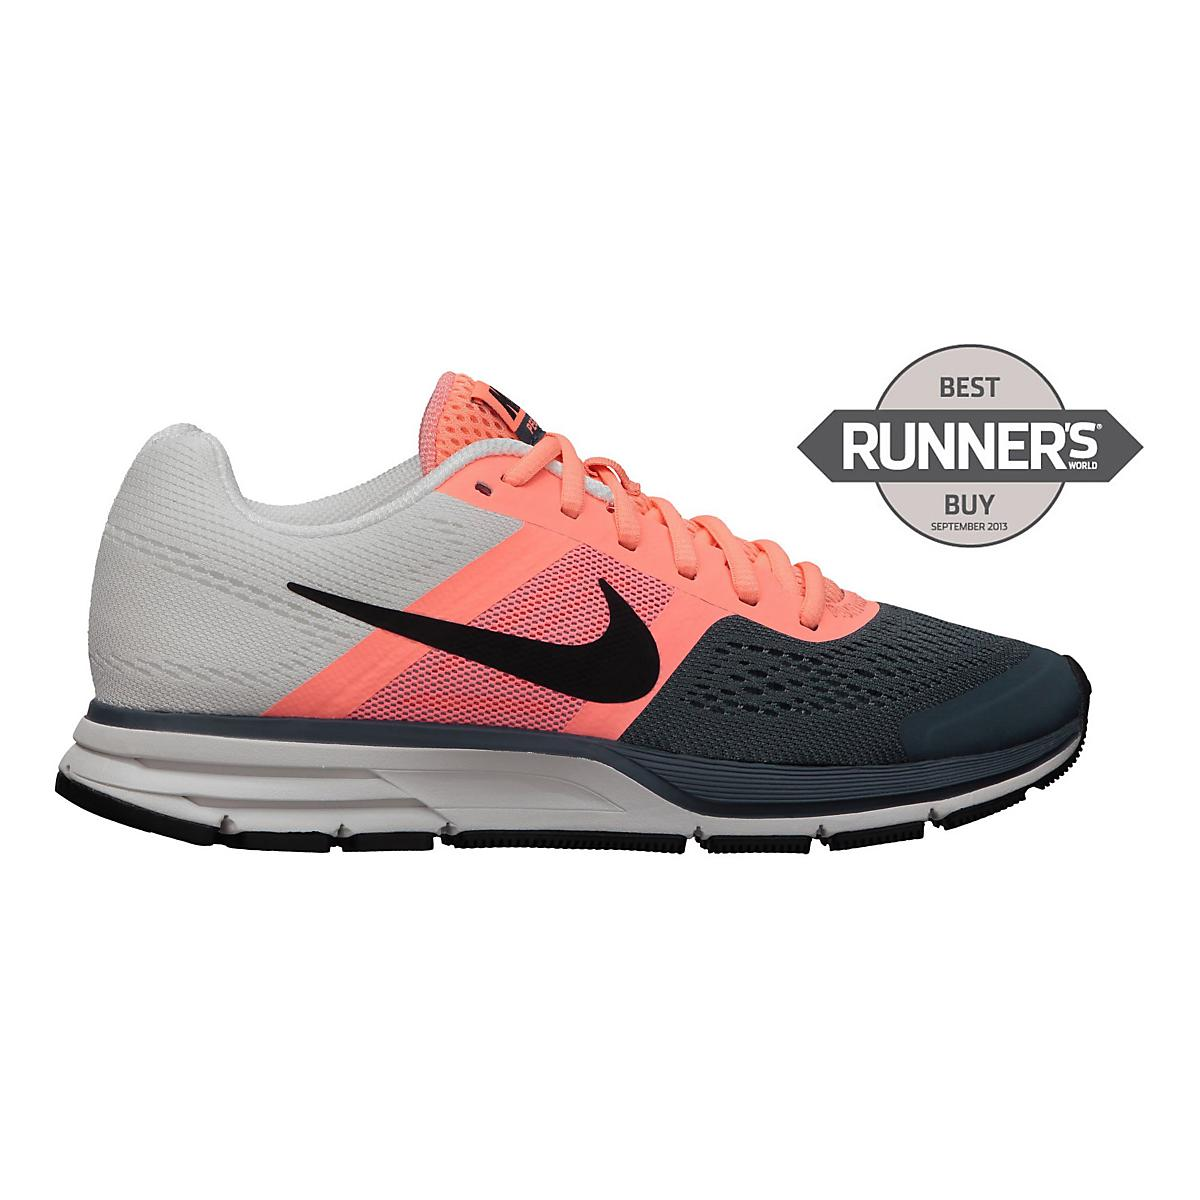 Womens Nike Air Pegasus+ 30 Running Shoe at Road Runner Sports 885fa972e6